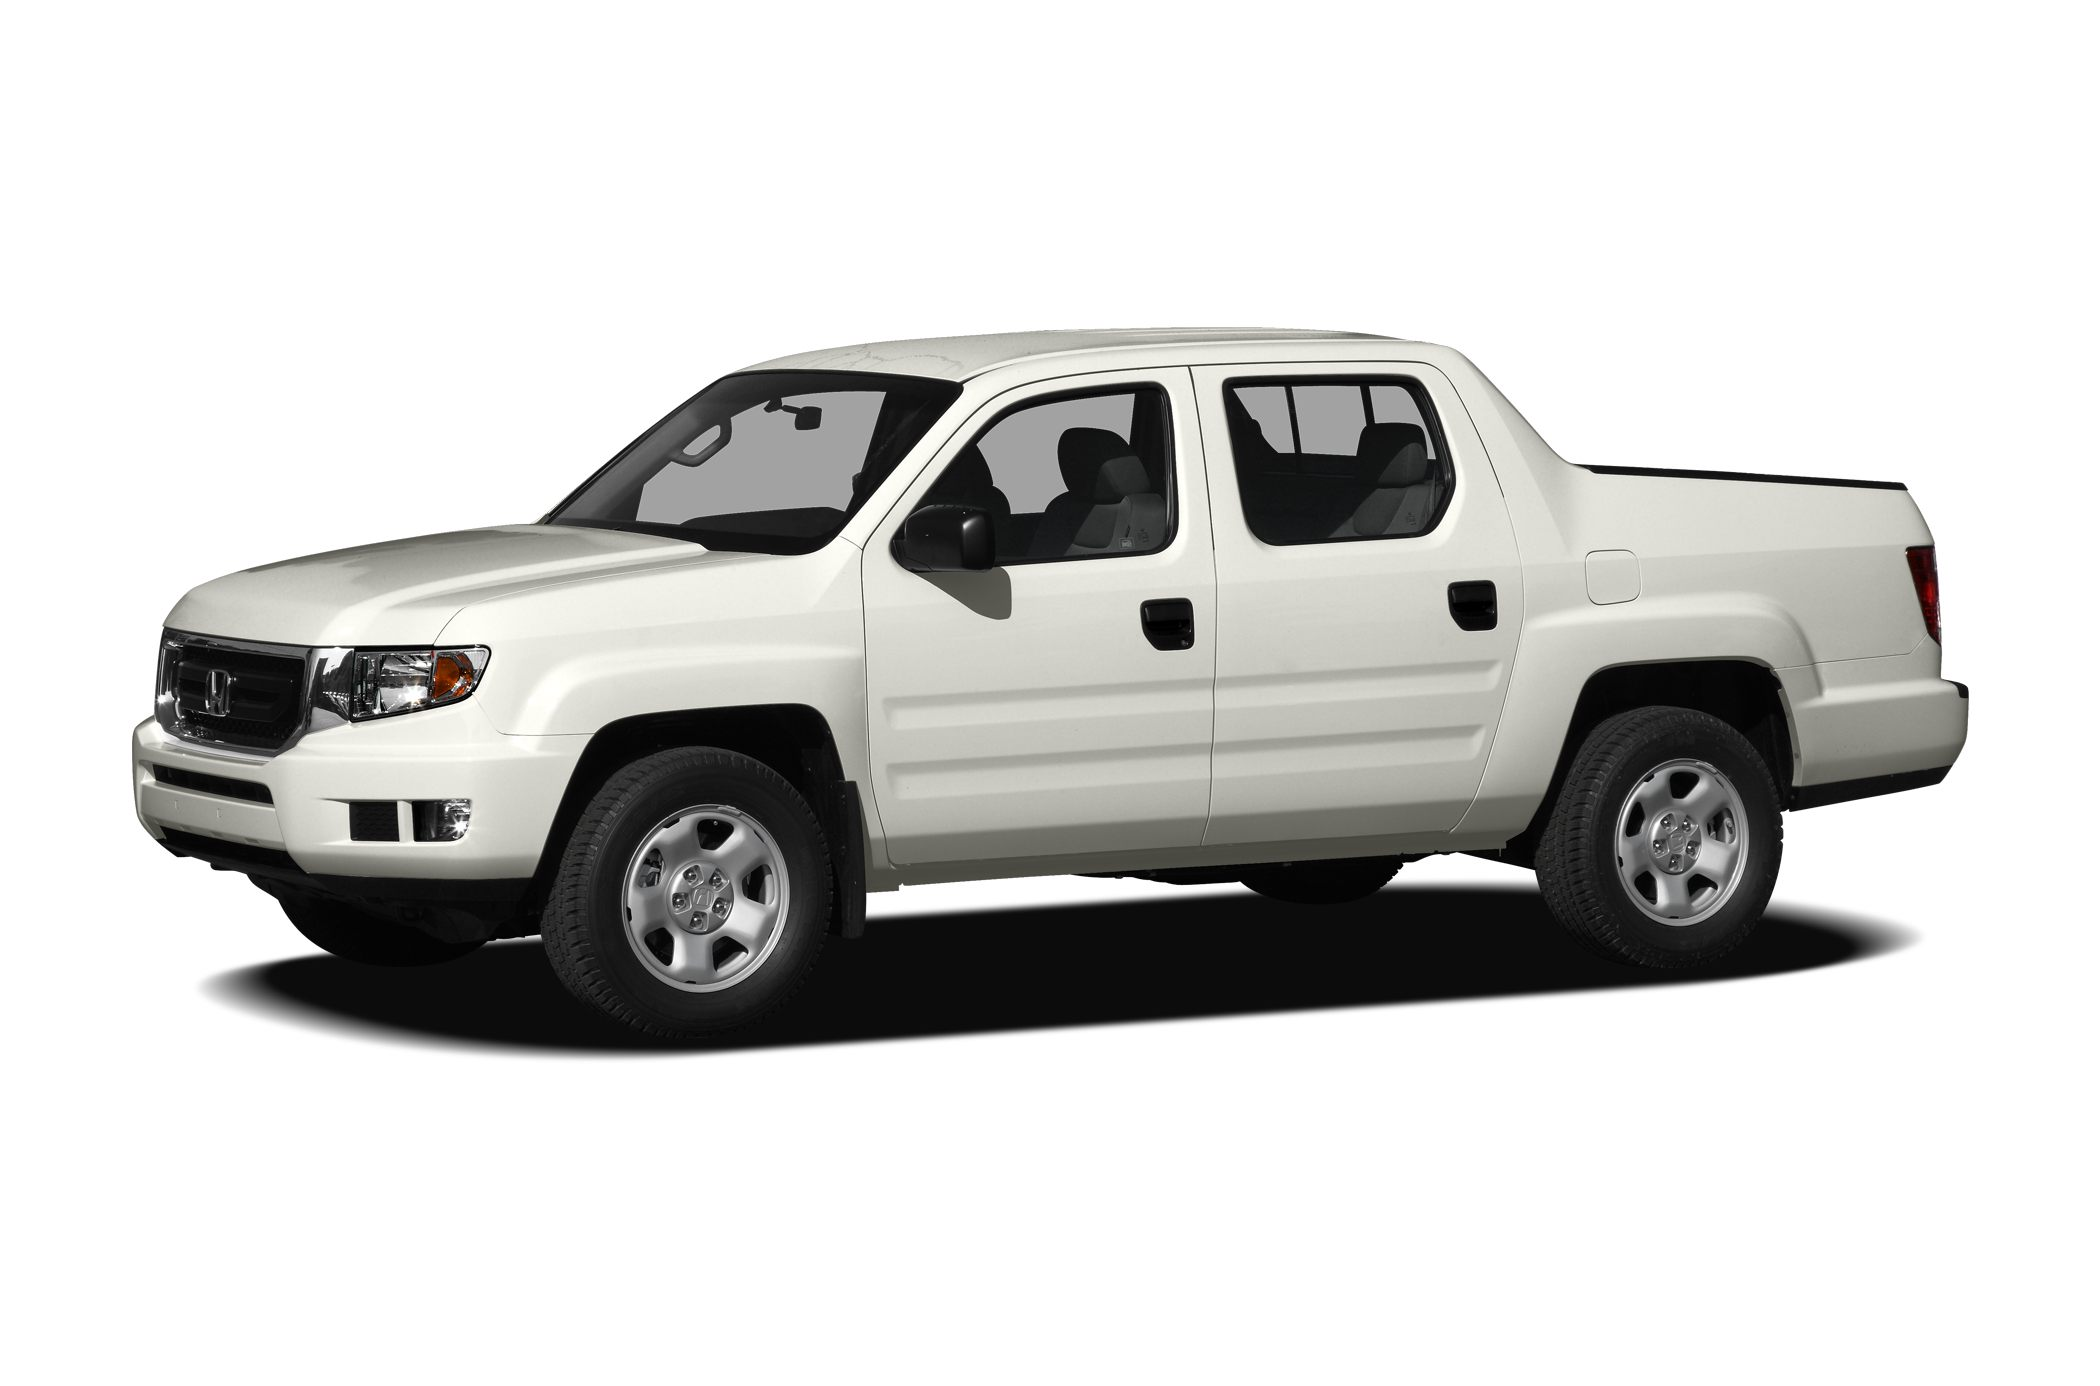 2011 Honda Ridgeline RTS Honda has outdone itself with this rip-roaring Vehicle New Arrival Th